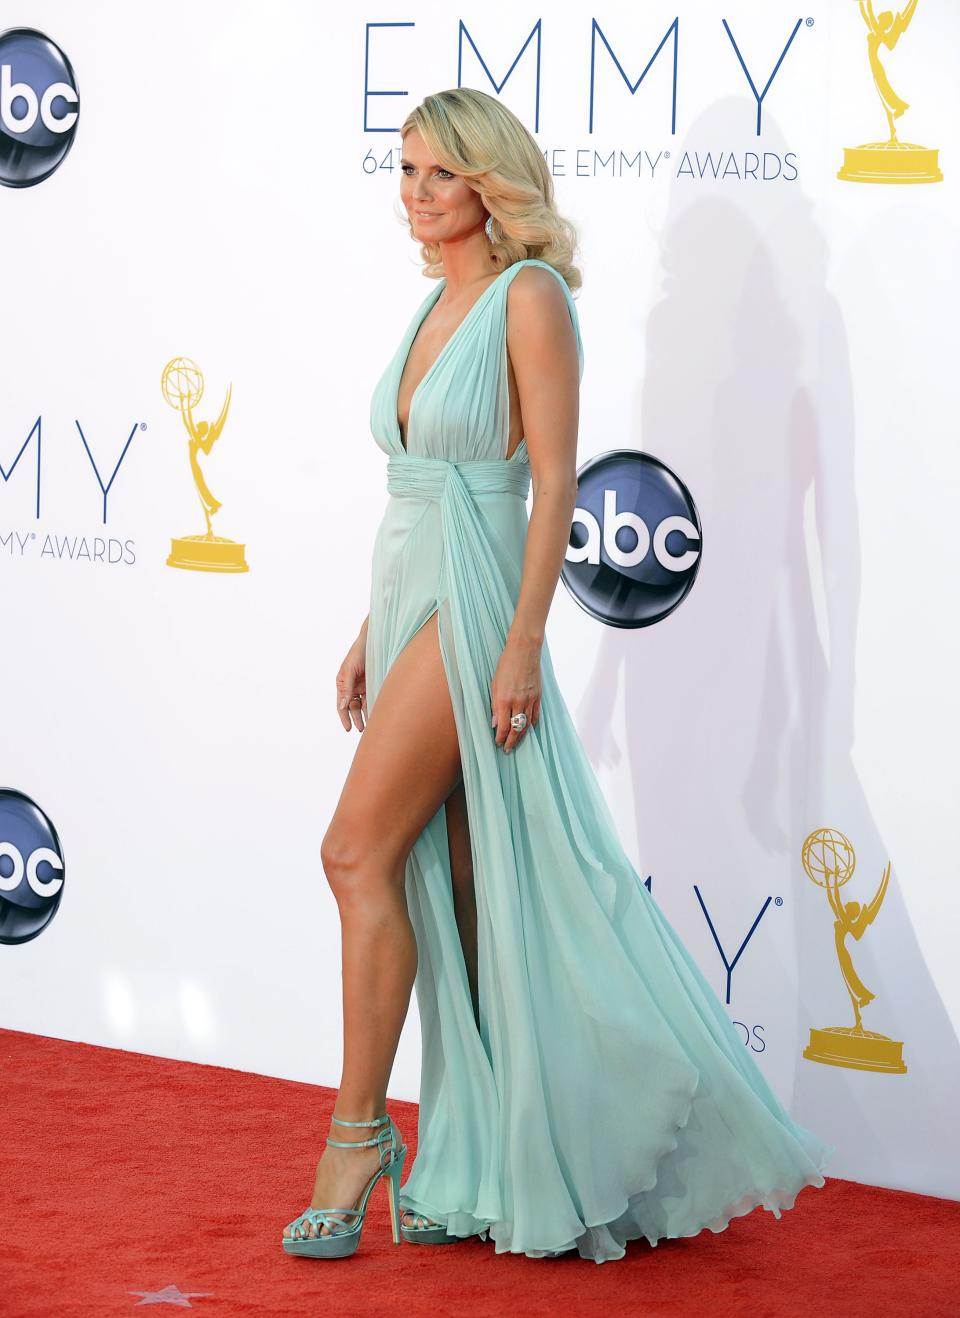 Model Heidi Klum arrives at the 64th Primetime Emmy Awards at the Nokia Theatre on Sunday, Sept. 23, 2012, in Los Angeles.  (Photo by Jordan Strauss/Invision/AP)